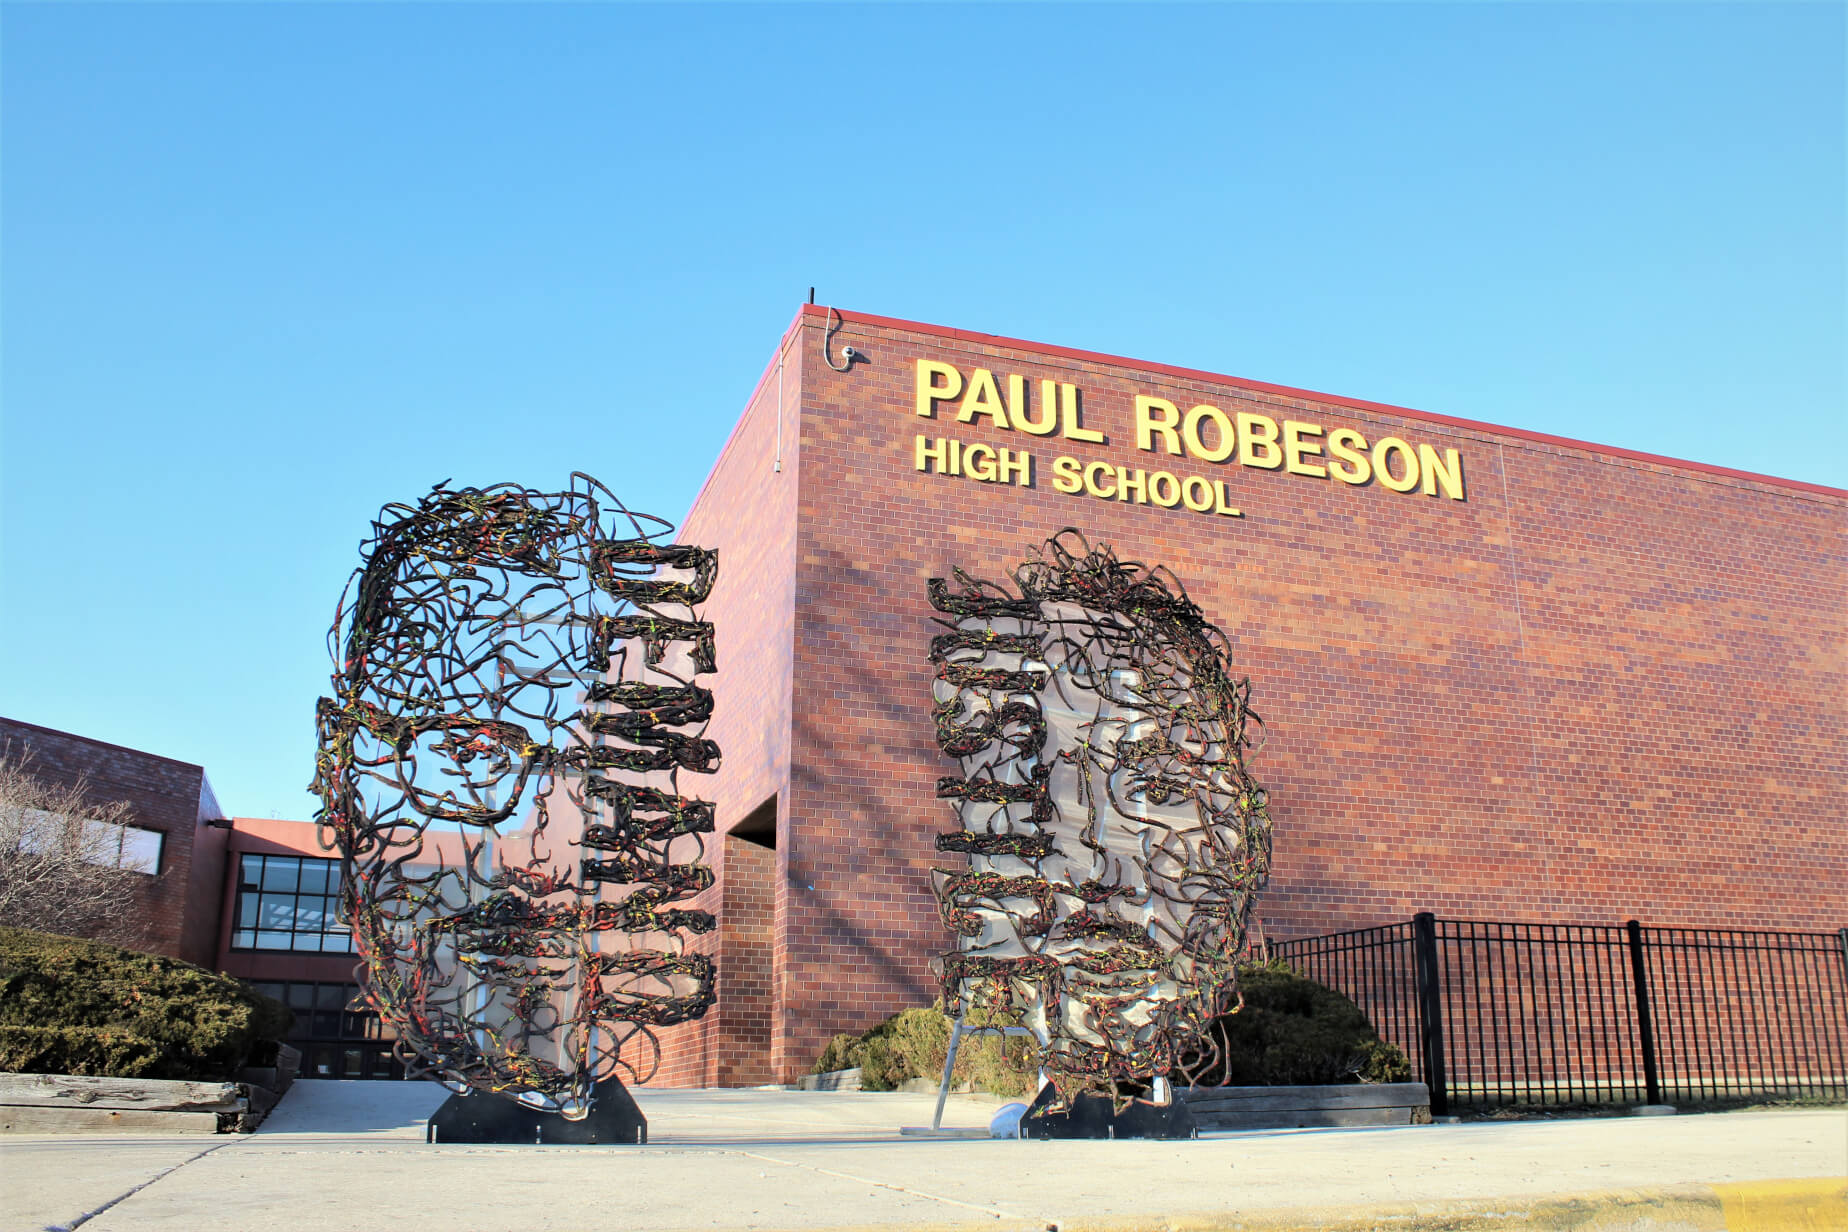 Paul Robeson High School